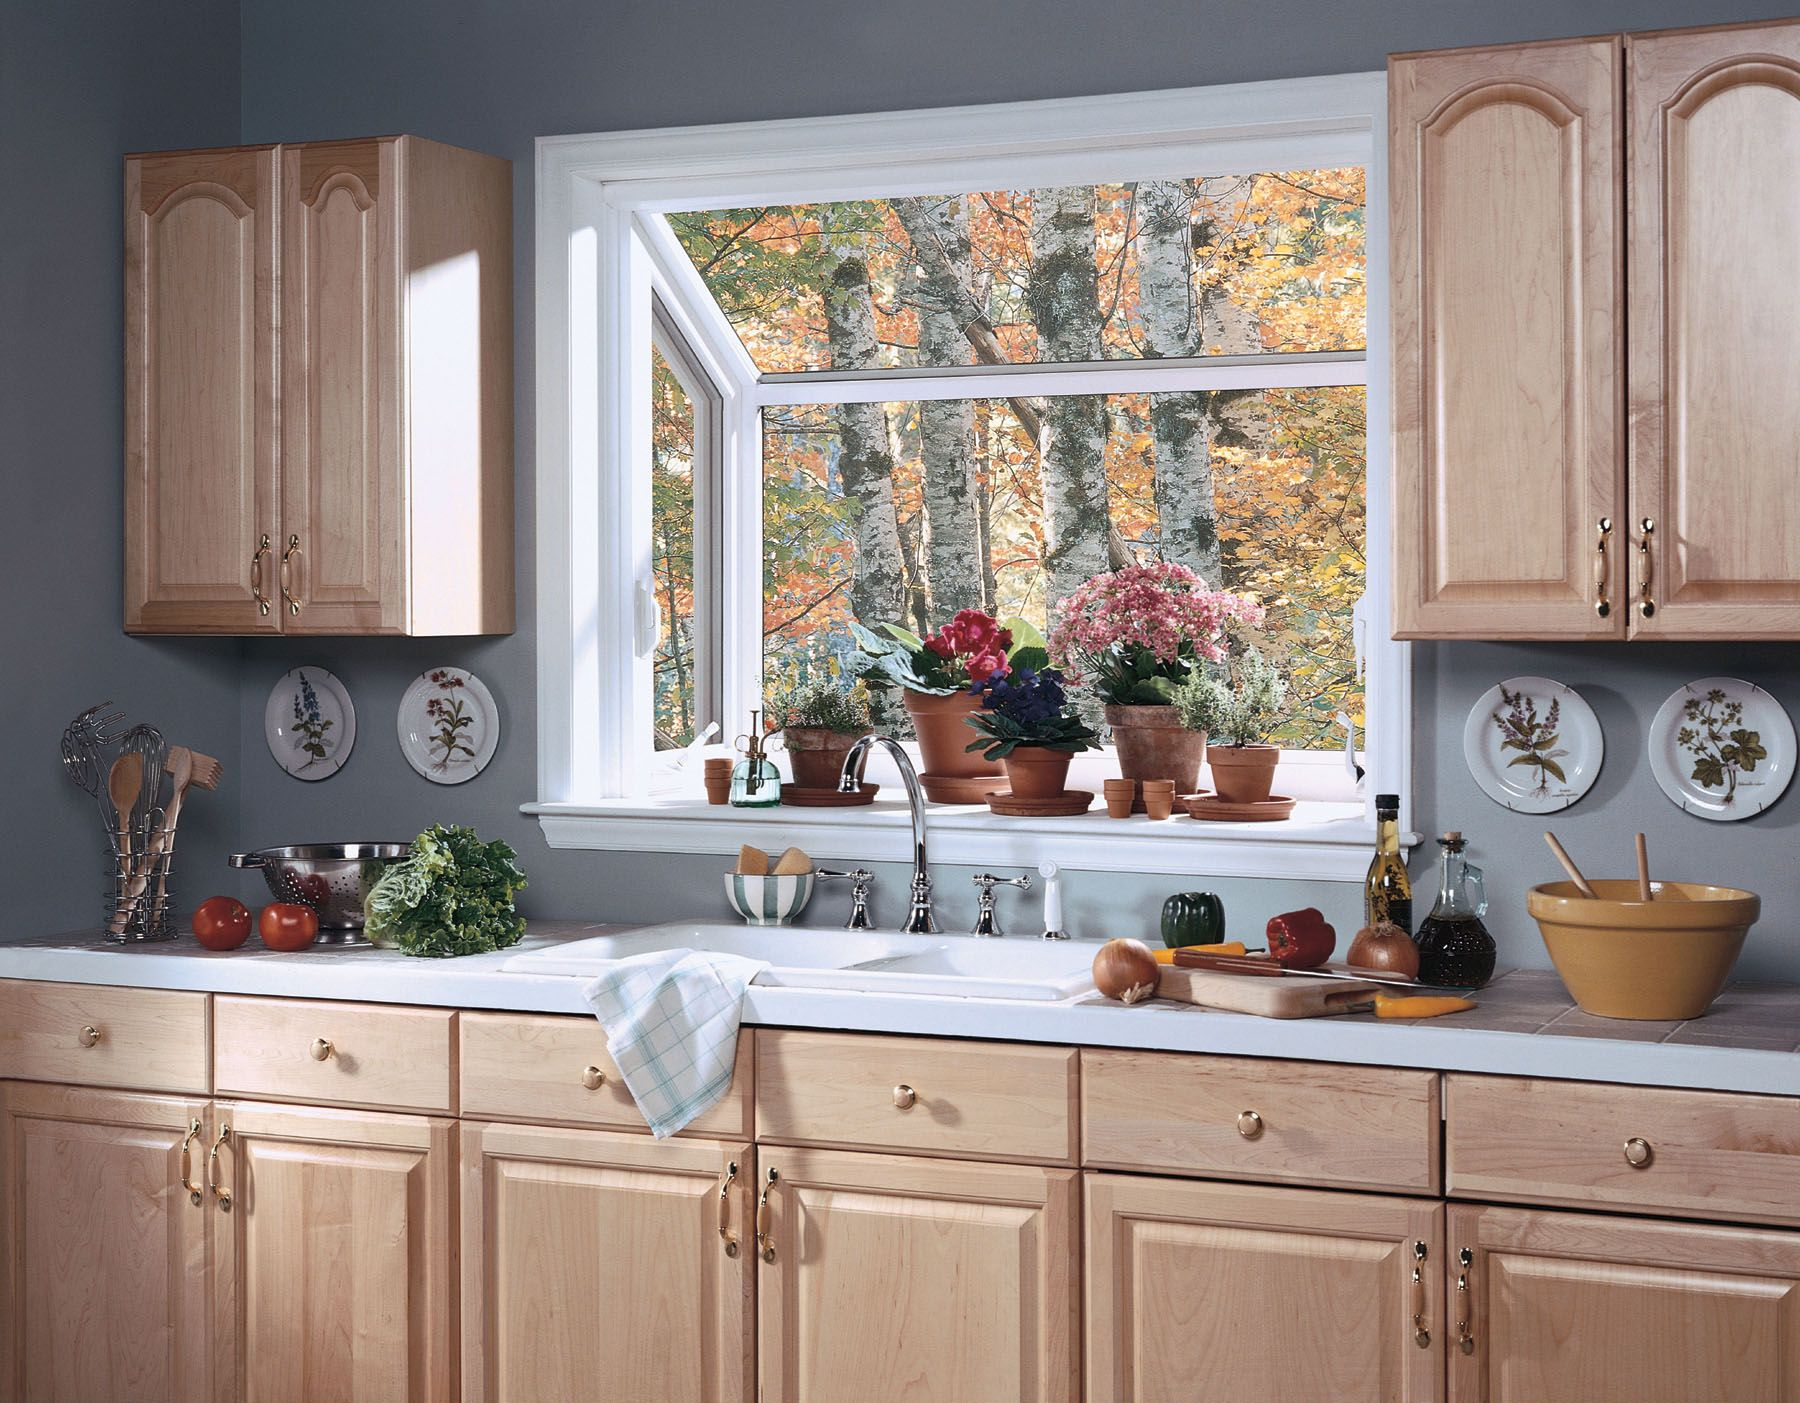 Exceptionnel Kitchen Casement Window Over Sink | Kitchen Garden Window, Greenhouse Sink  Window, Window Boxes For Plant .